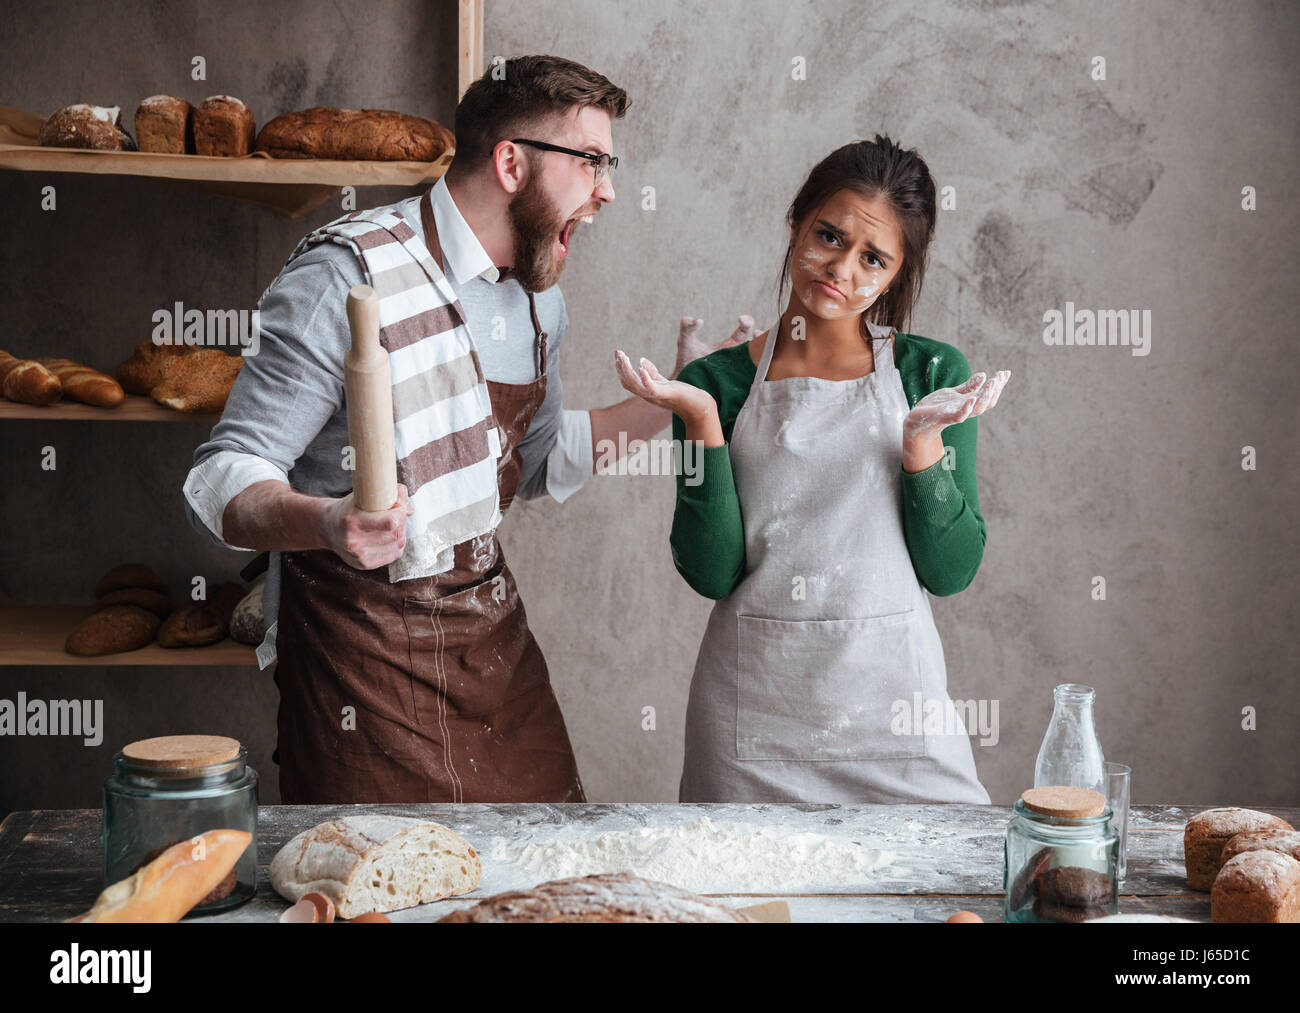 Angry bearded man in glasses shouting at his woman in apron while they cooking in kitchen Stock Photo